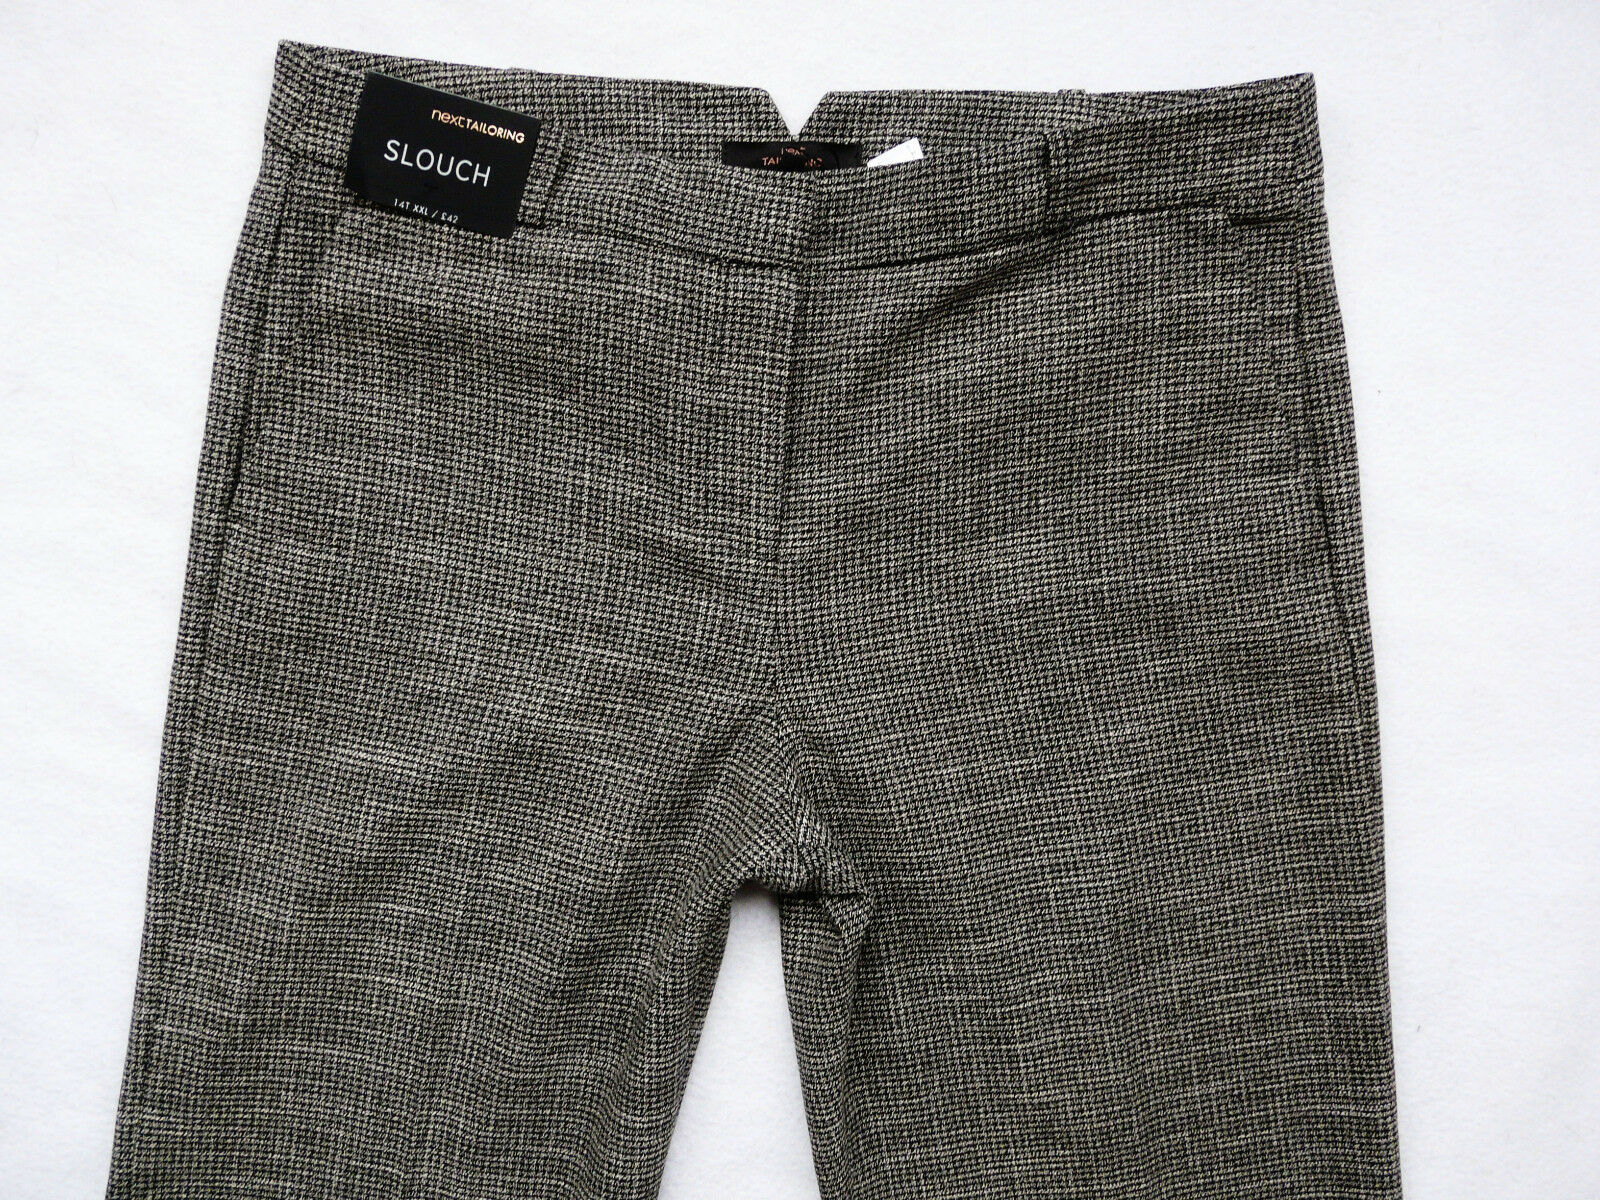 BNWT NEXT Premium Work grey warm relaxed slouch office smart work trousers tall